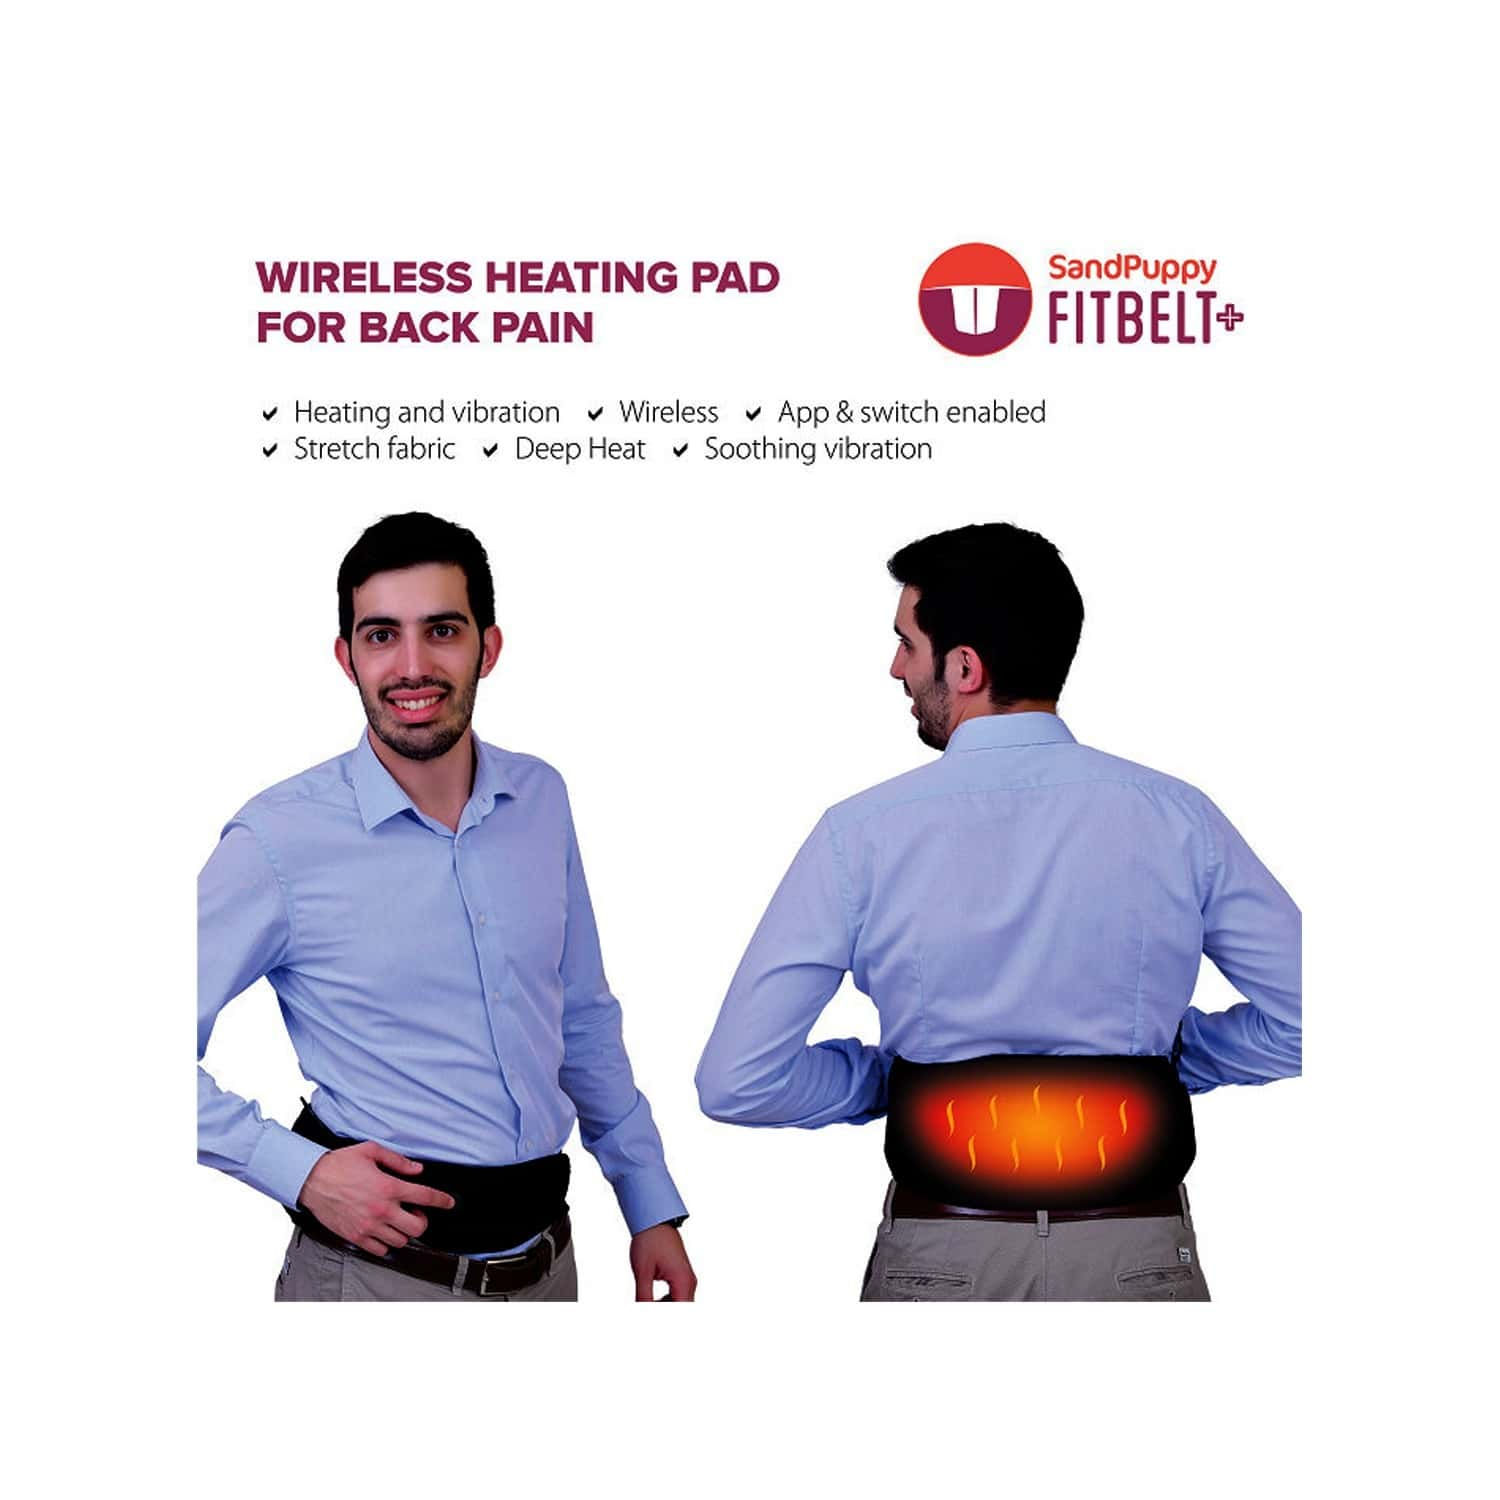 Sandpuppy Portable Wireless Electric Heating Belt For Back Pain Relief - Smartphone App Based Control (micro-vibration Feature)